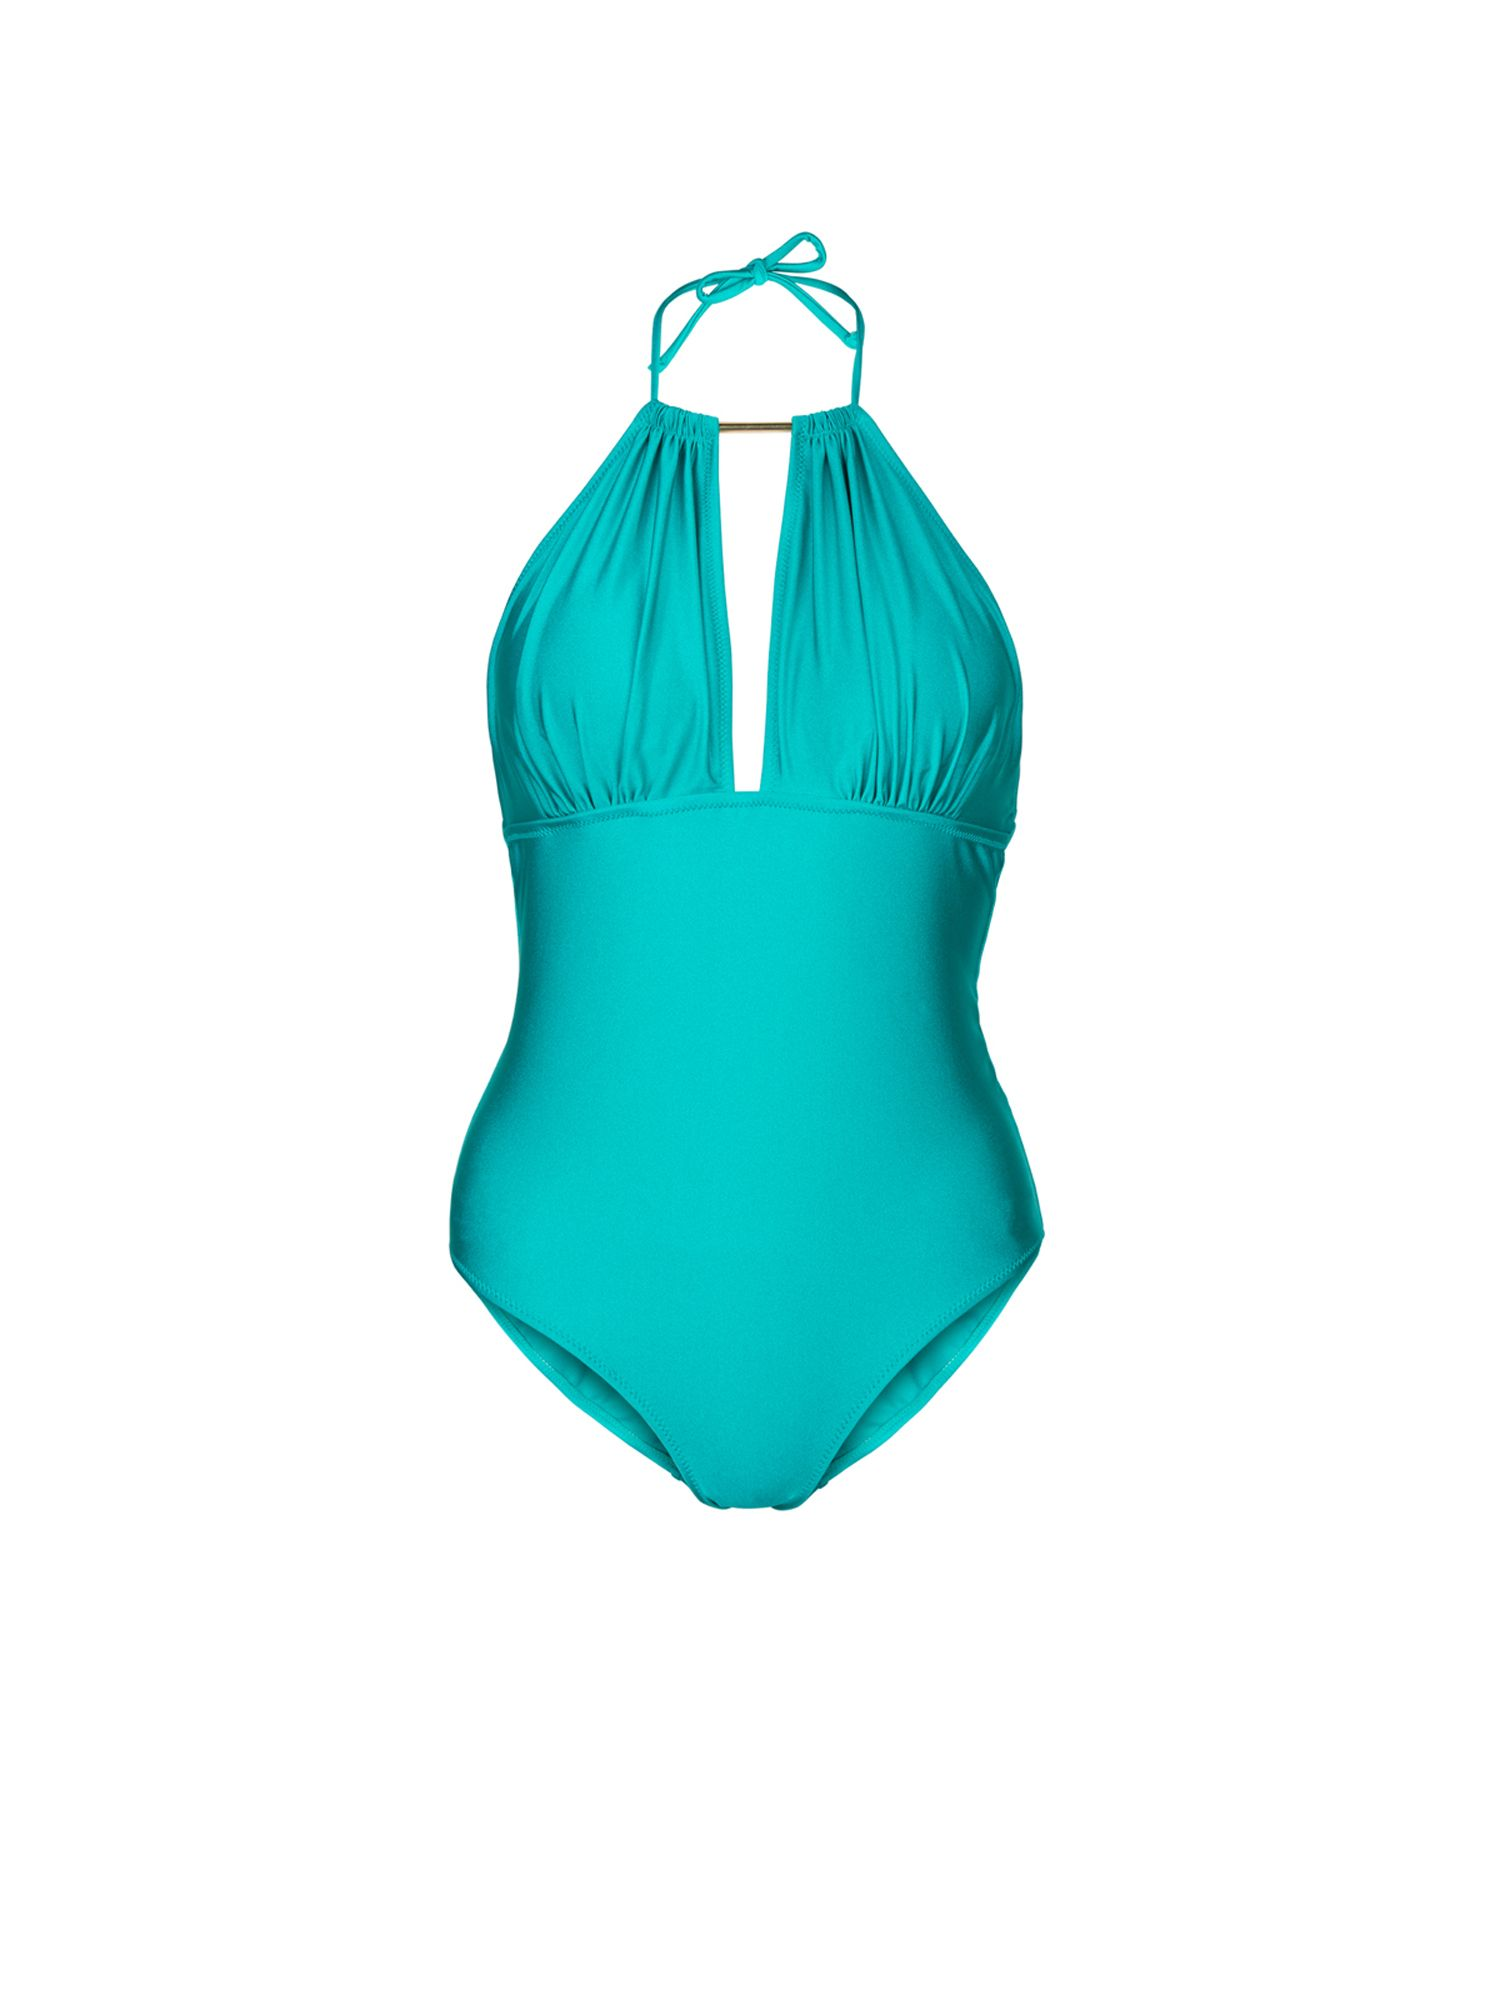 Accessorize High Neck Plunge Swimsuit Green